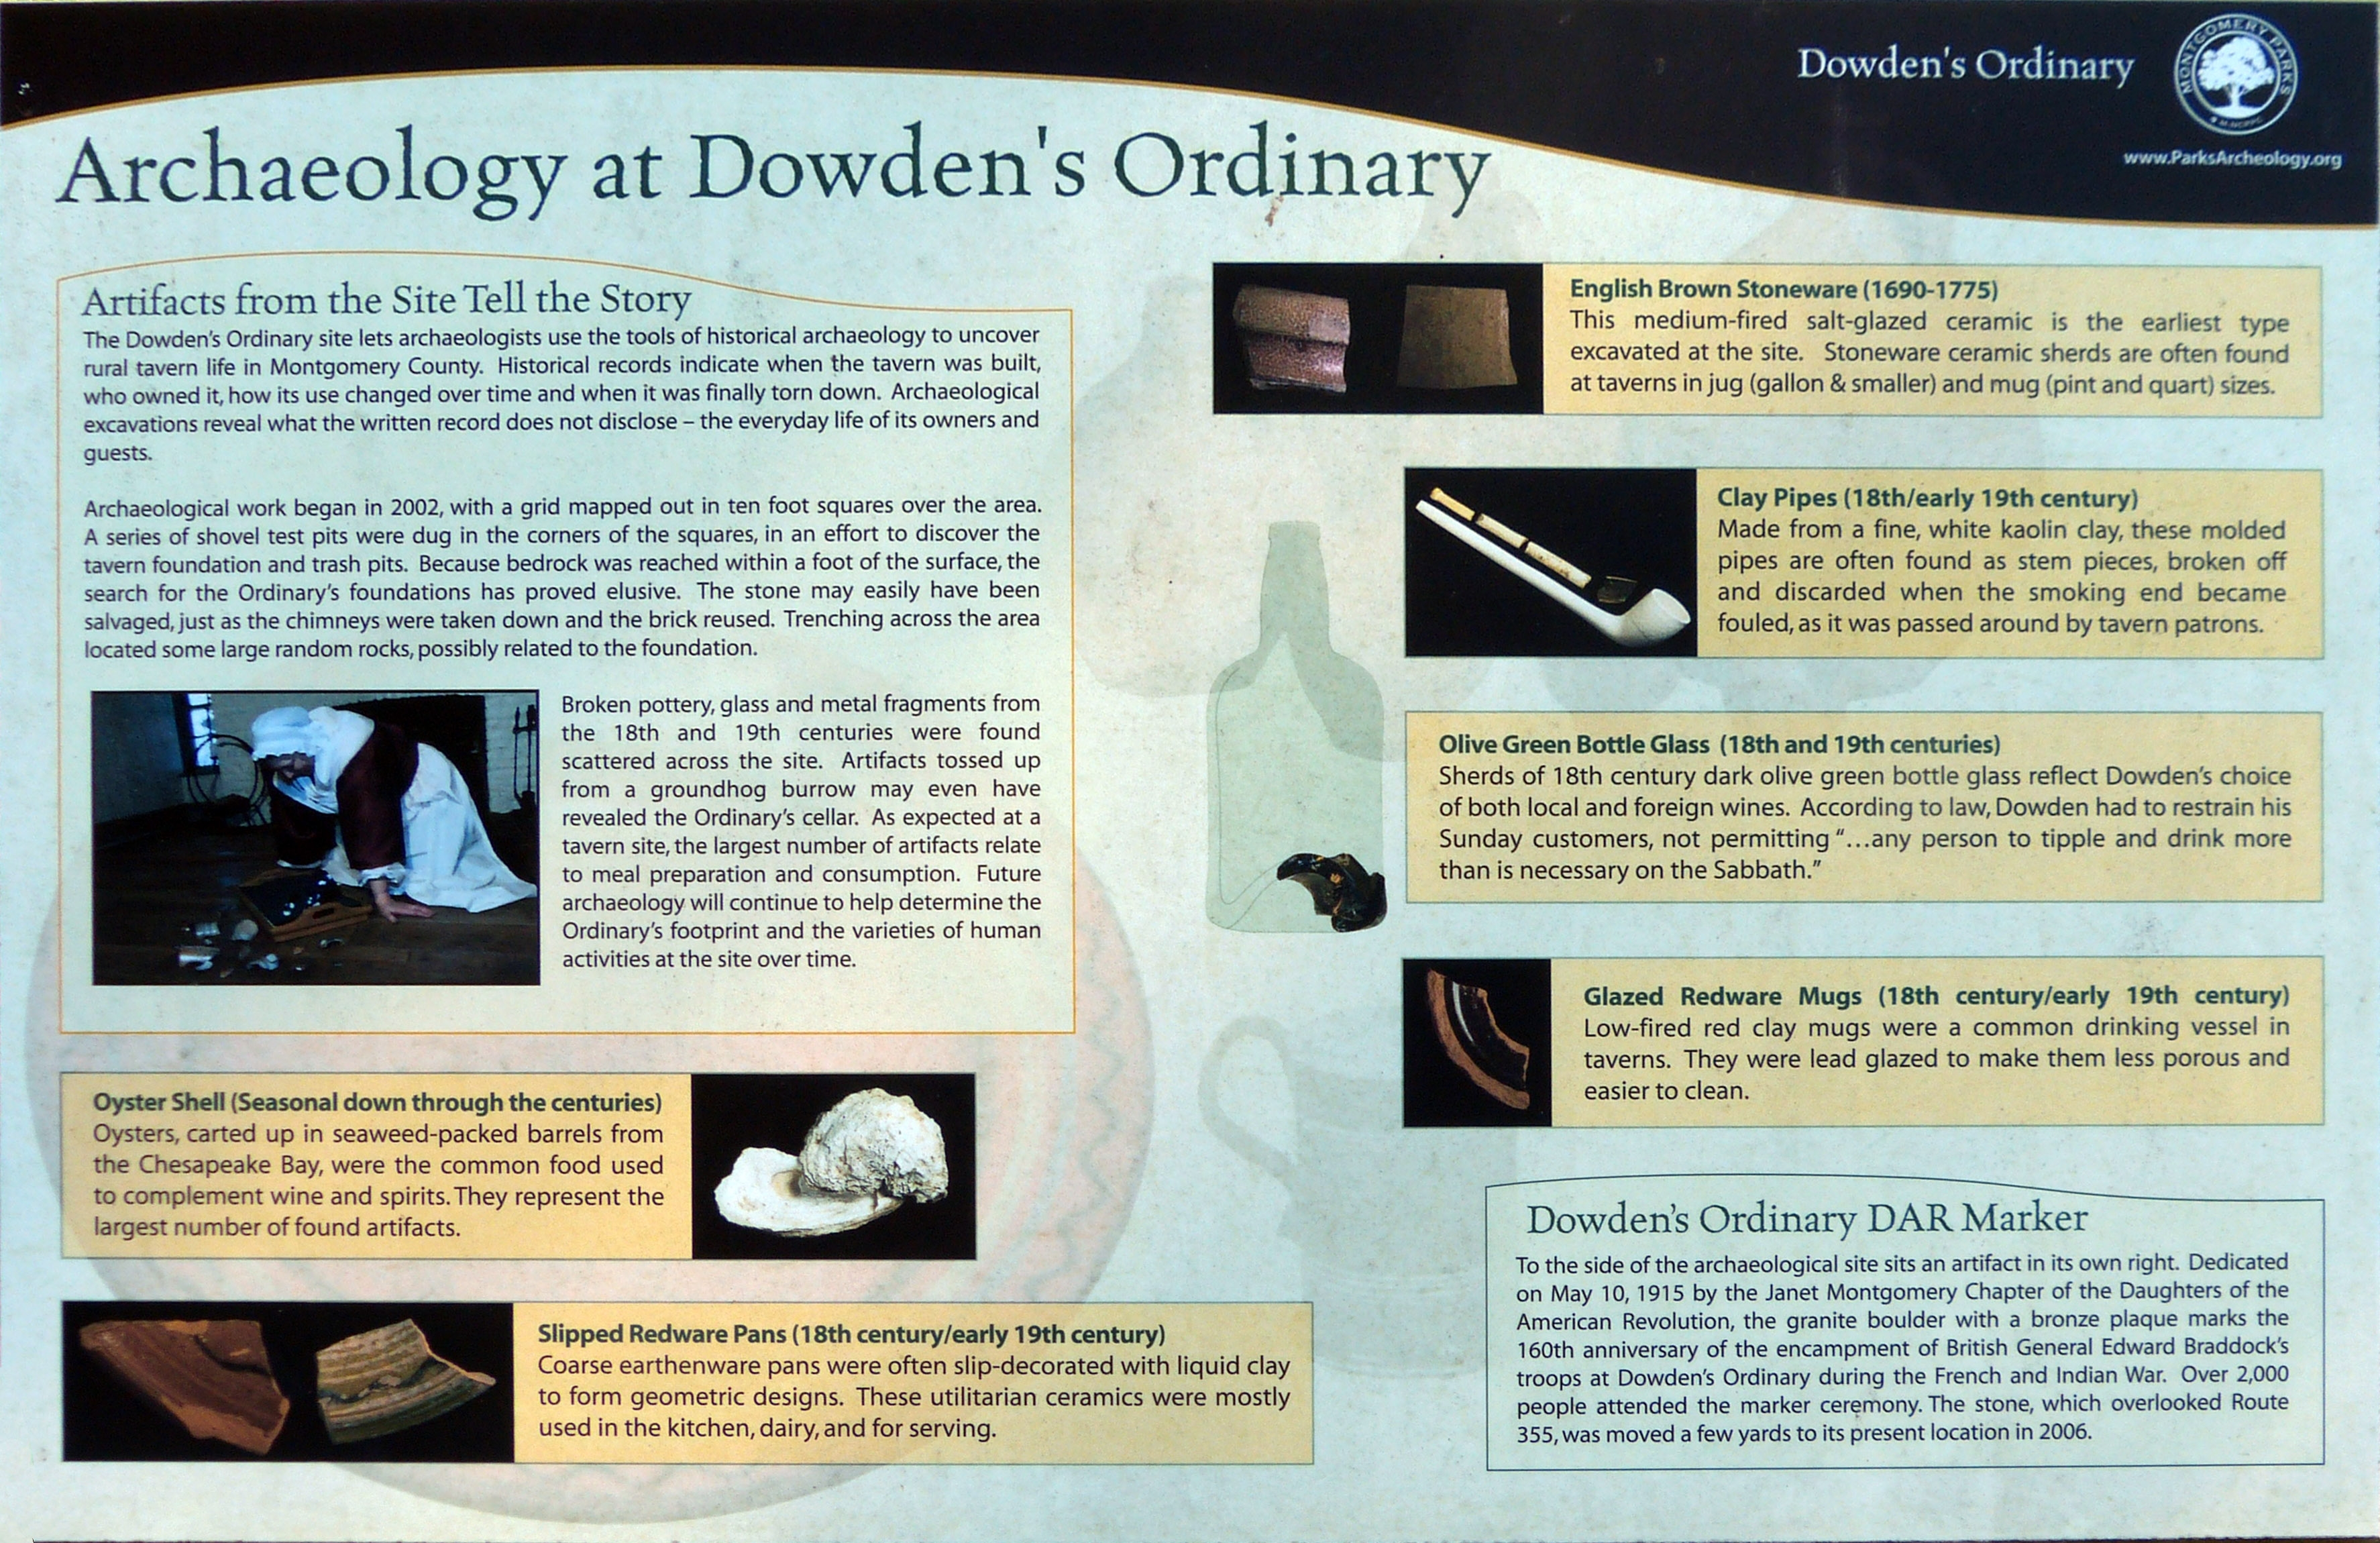 Archaeology at Dowden